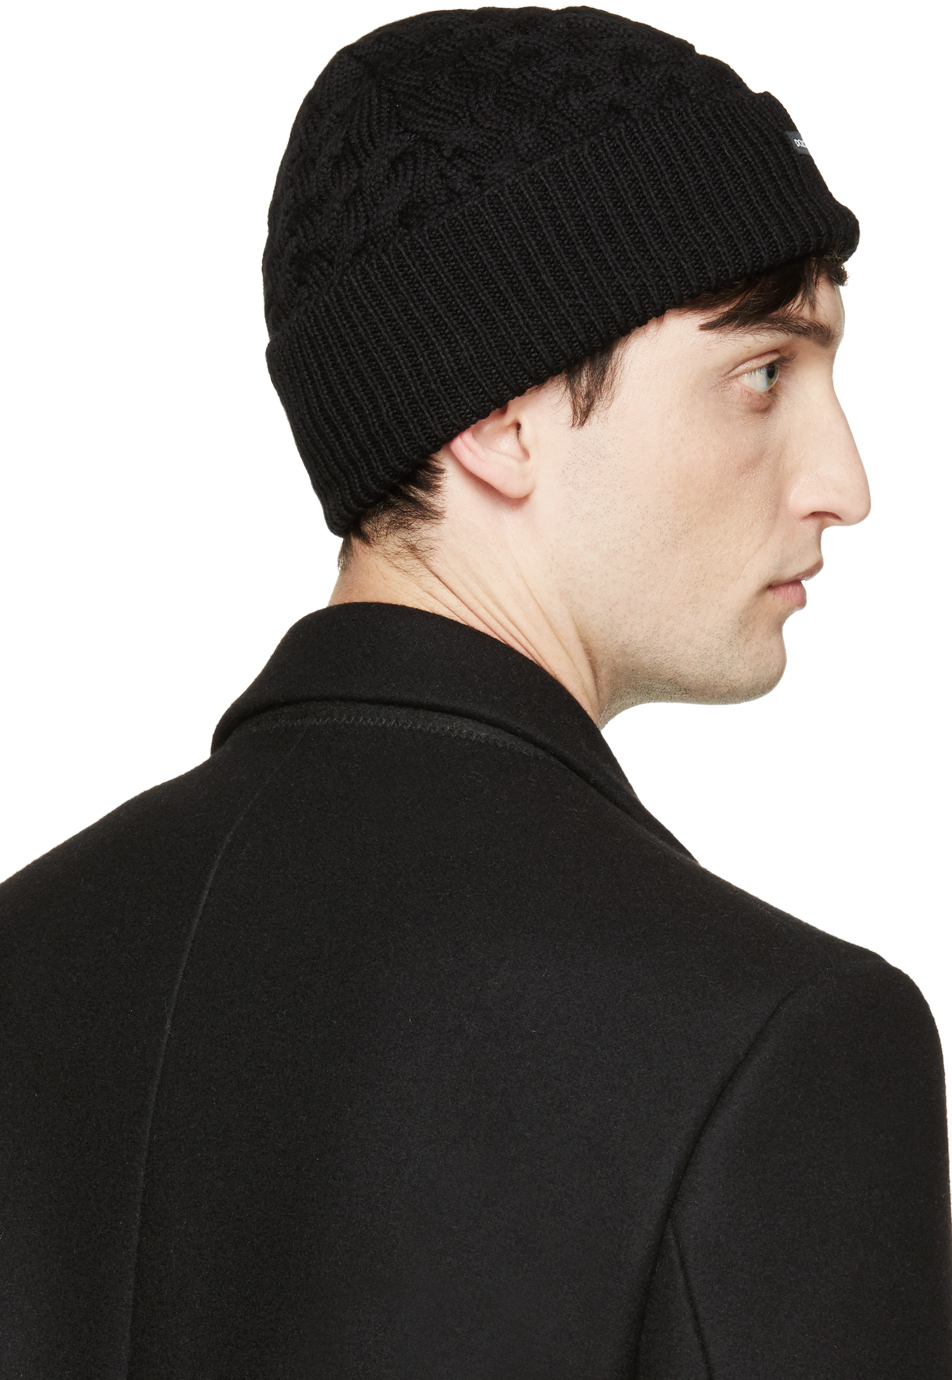 Lyst - Dolce   Gabbana Black Wool Cable Knit Beanie in Black for Men 05b9013dbcb